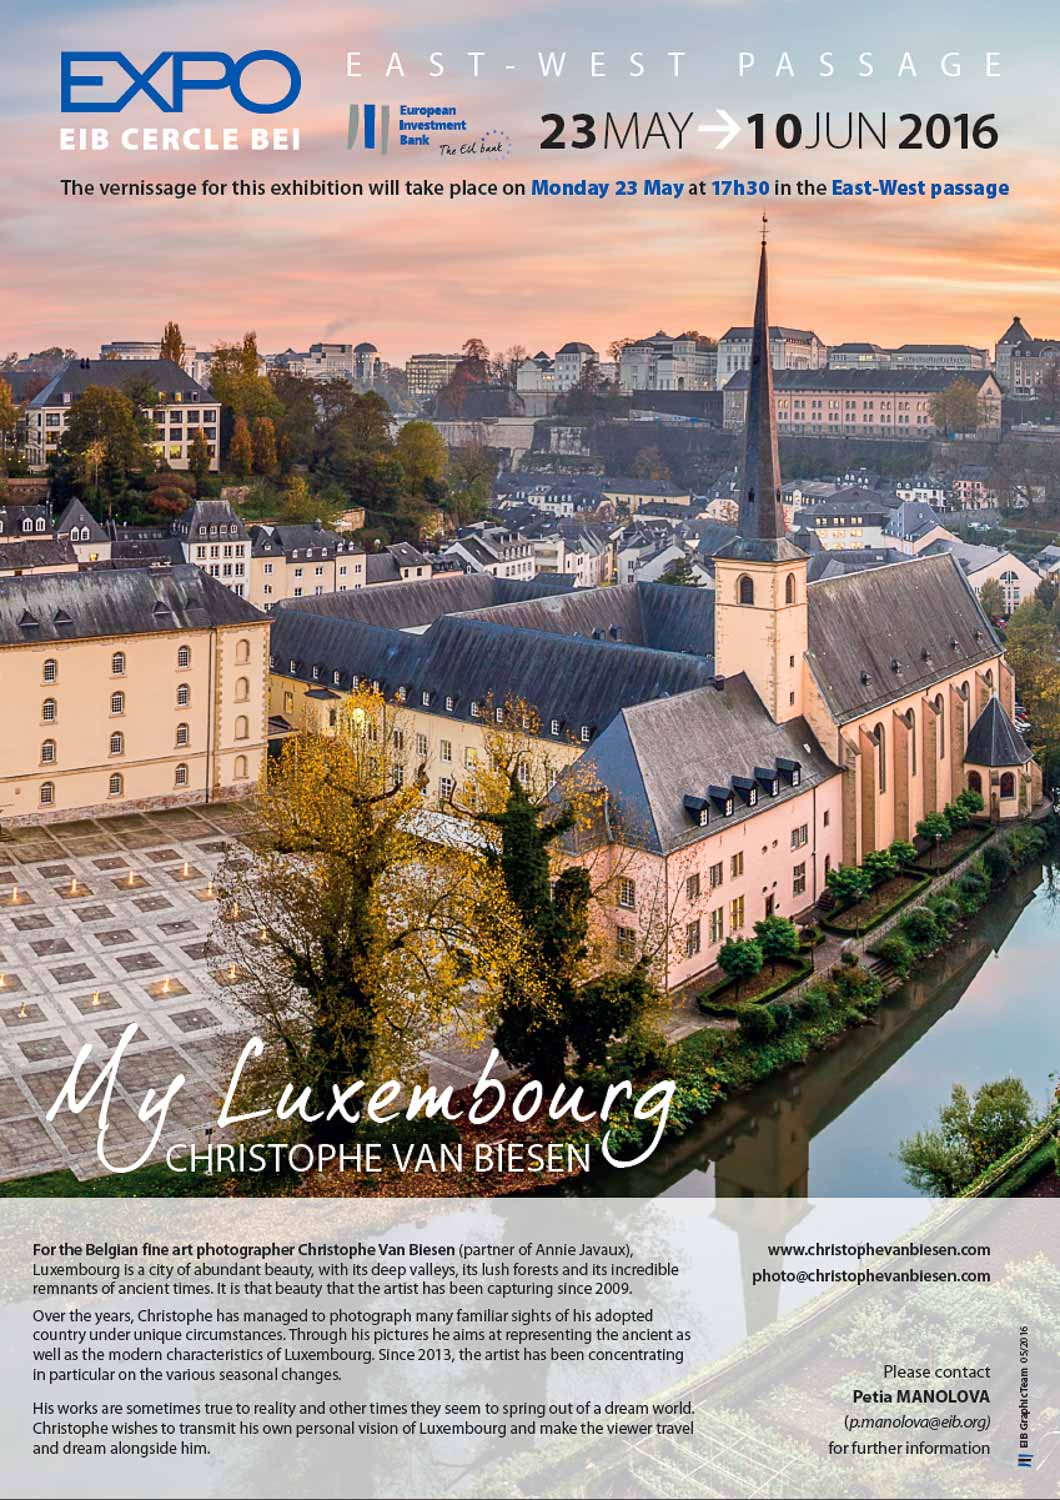 Official invitation poster of the My Luxembourg photography exhibition by Christophe Van Biesen at the European Investment Bank in Luxembourg City